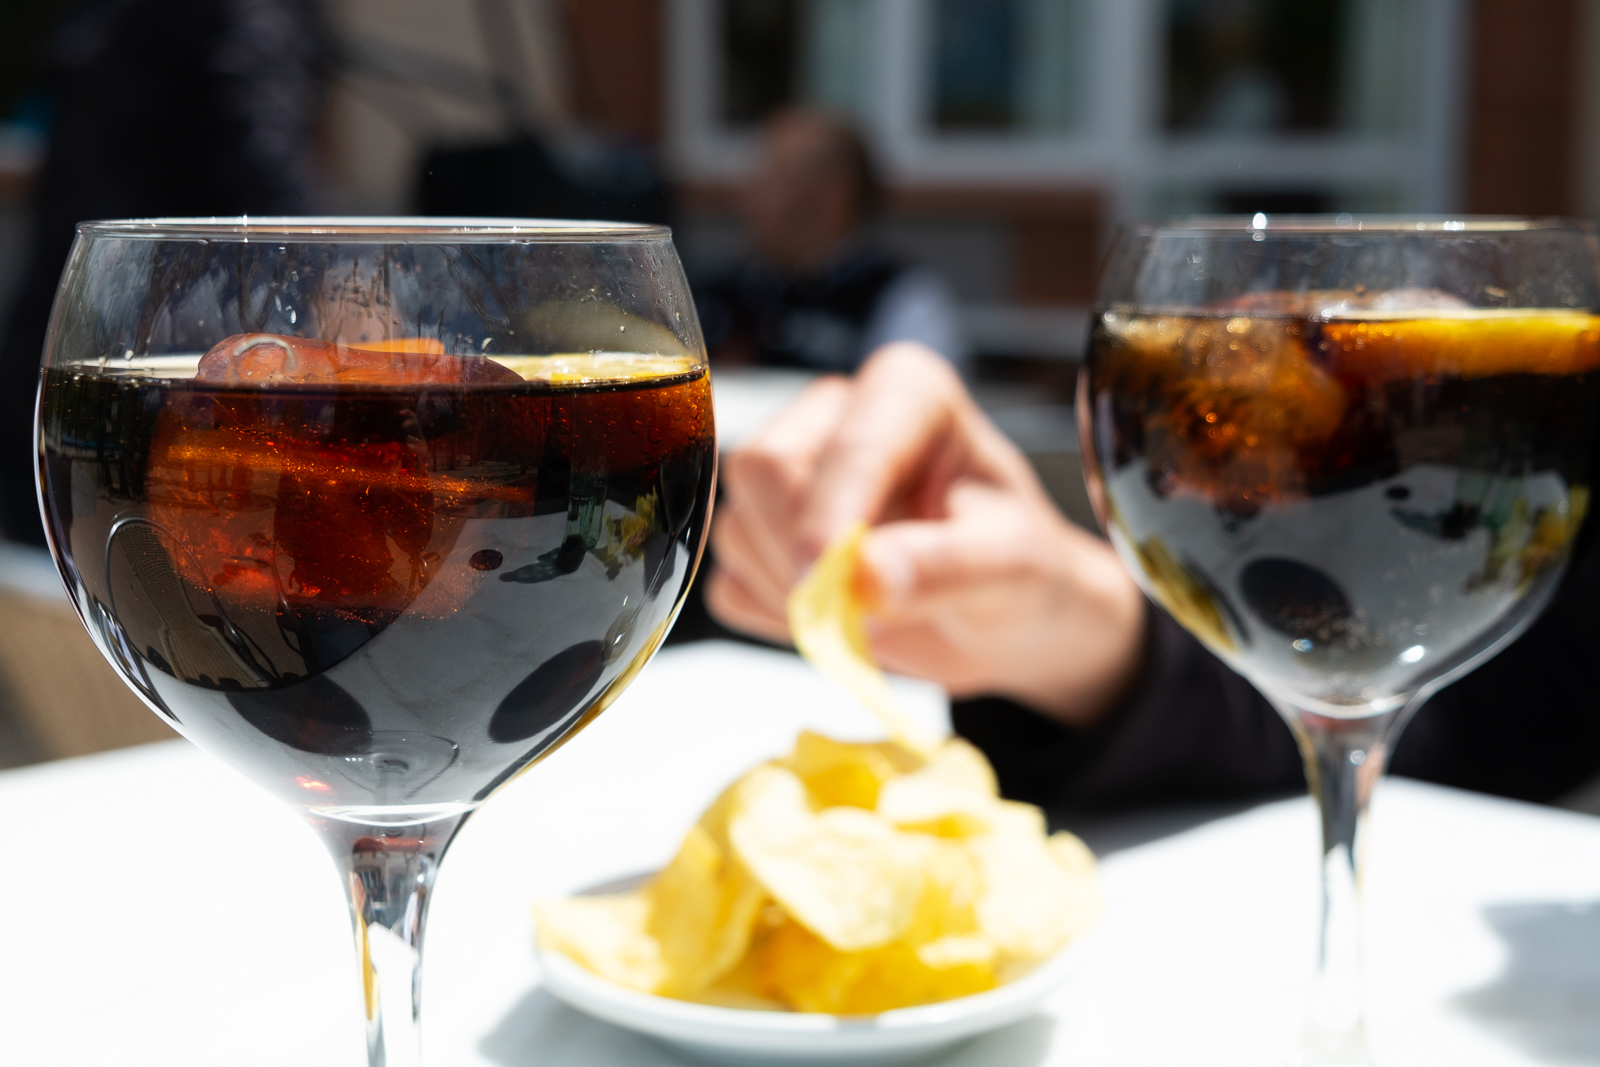 Vermouth and Chips. (Photo by nito100/Getty Images)